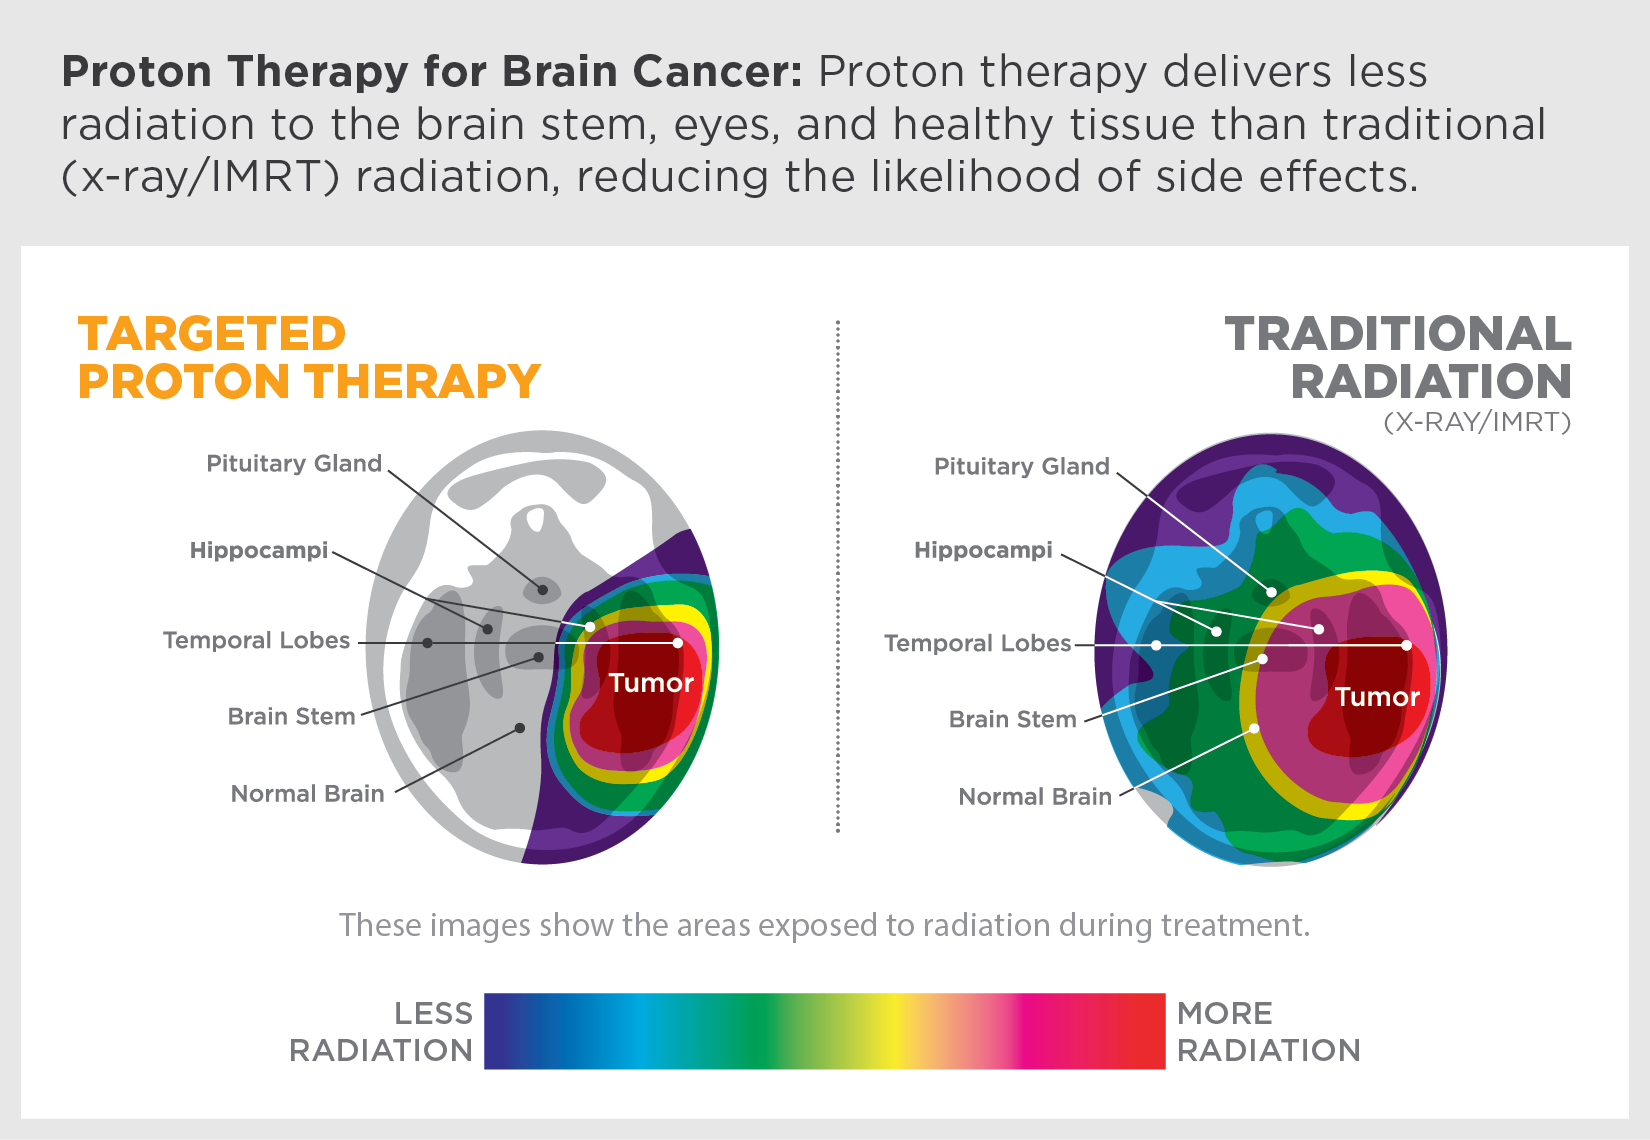 Proton therapy delivers less radiation to the brain stem, eyes and healthy tissue than traditional (x-ray/IMRT) radiation, reducing the likelihood of side effects.